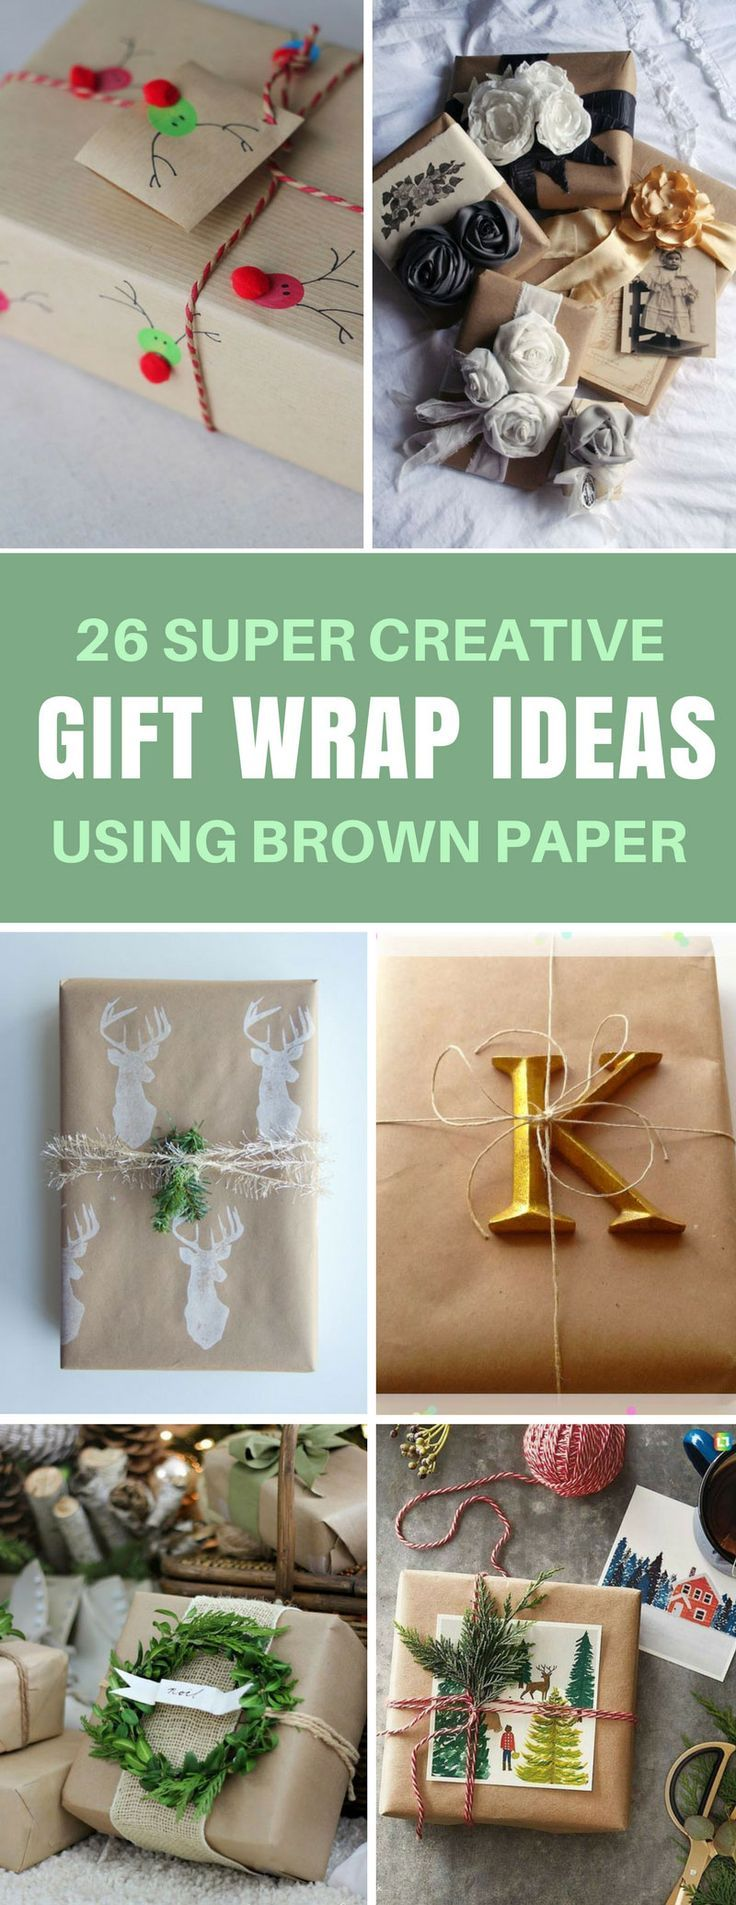 26 unique gift wrap ideas using brown paper and your imagination 26 unique gift wrap ideas using brown paper and your imagination brown paper wraps and gift negle Gallery